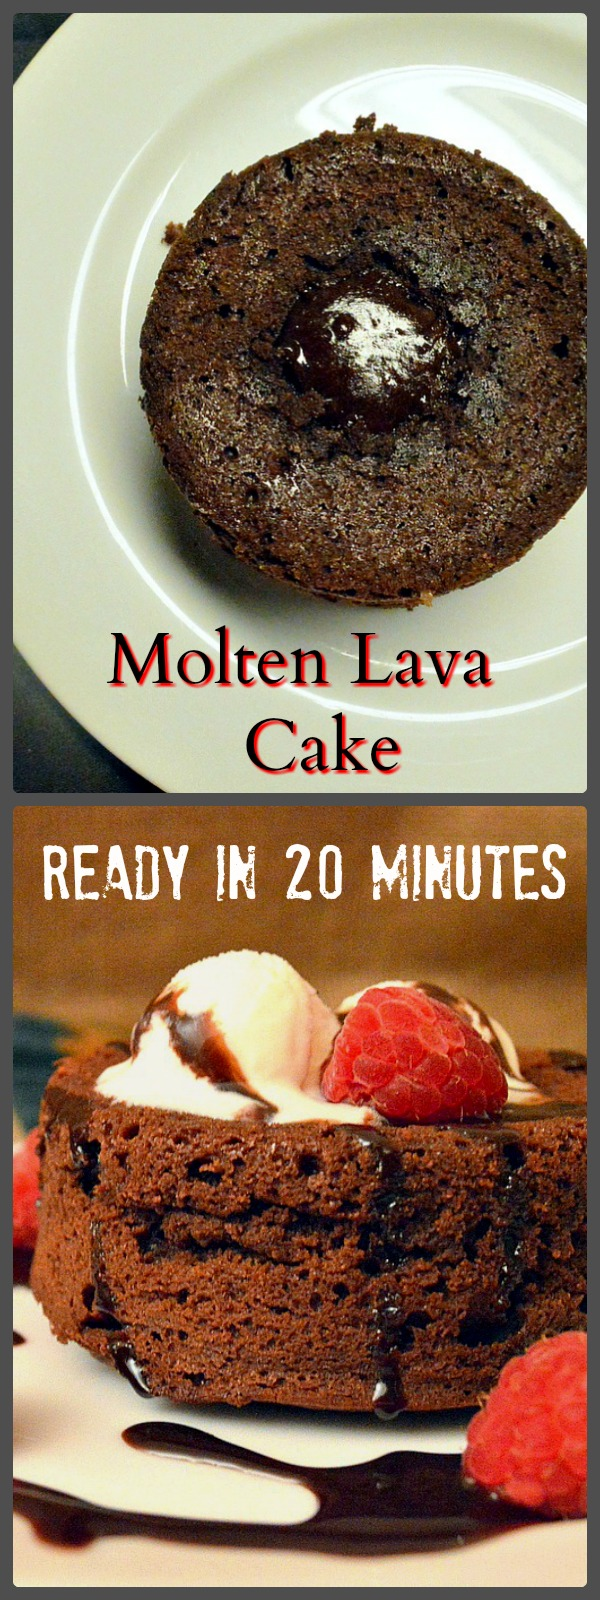 Chocolate Lava Cake is a family favorite. Make them in 15 minutes, and set aside until ready to bake. Place in oven for a long 8 minutes and serve! Rich and full of chocolate, they will be begging for more! www.thisishowicook.com #moltenlavacake #chocolate desserts #cake